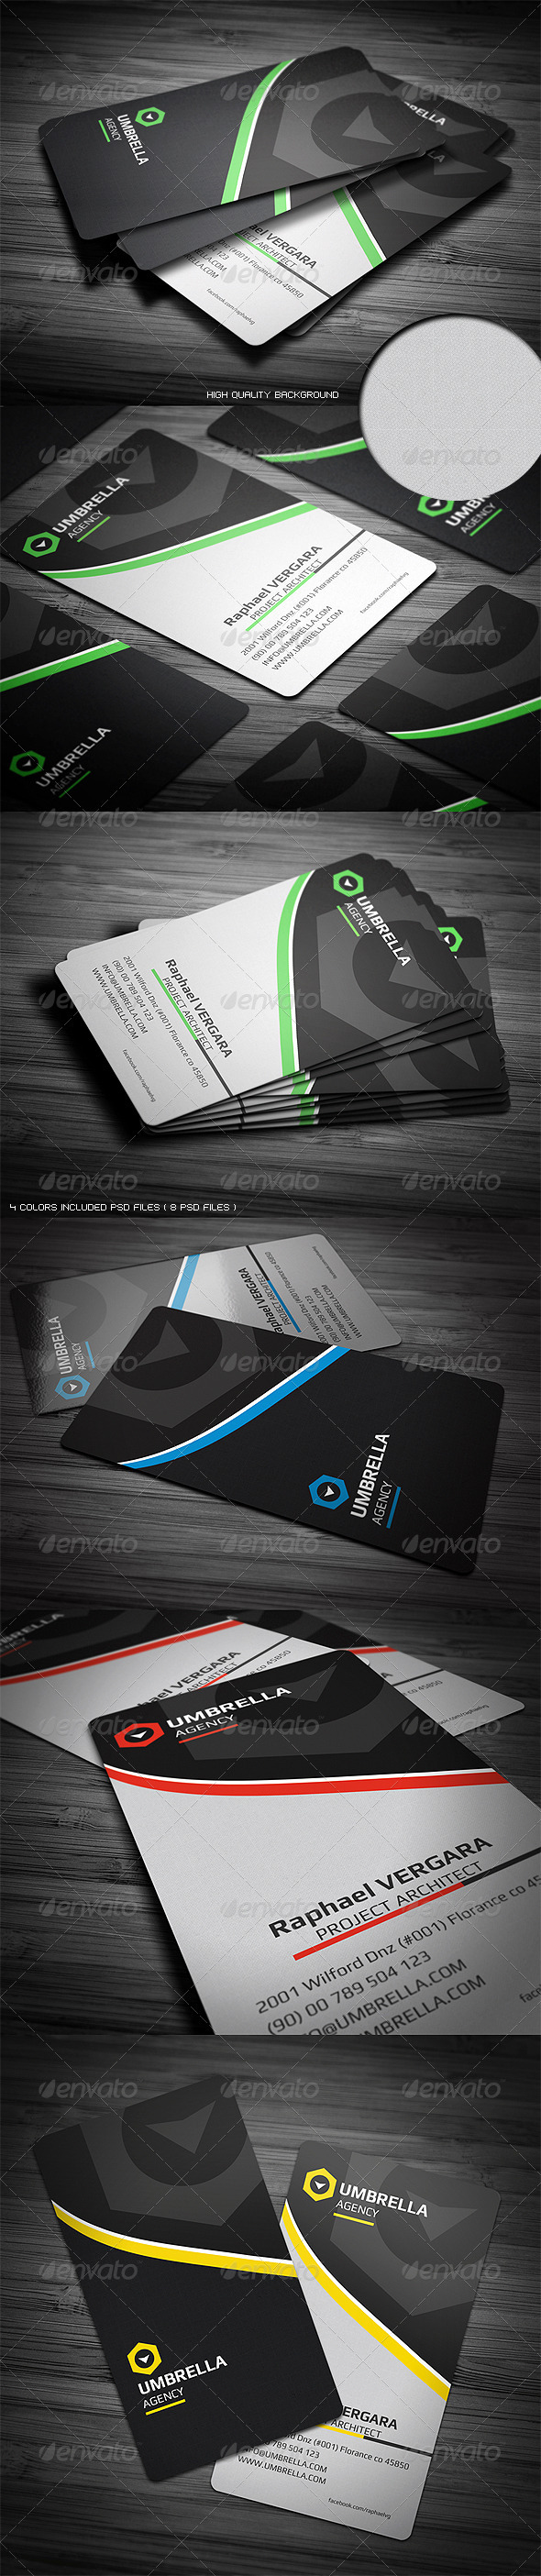 GraphicRiver Sleek Corporate Business Card 3410062